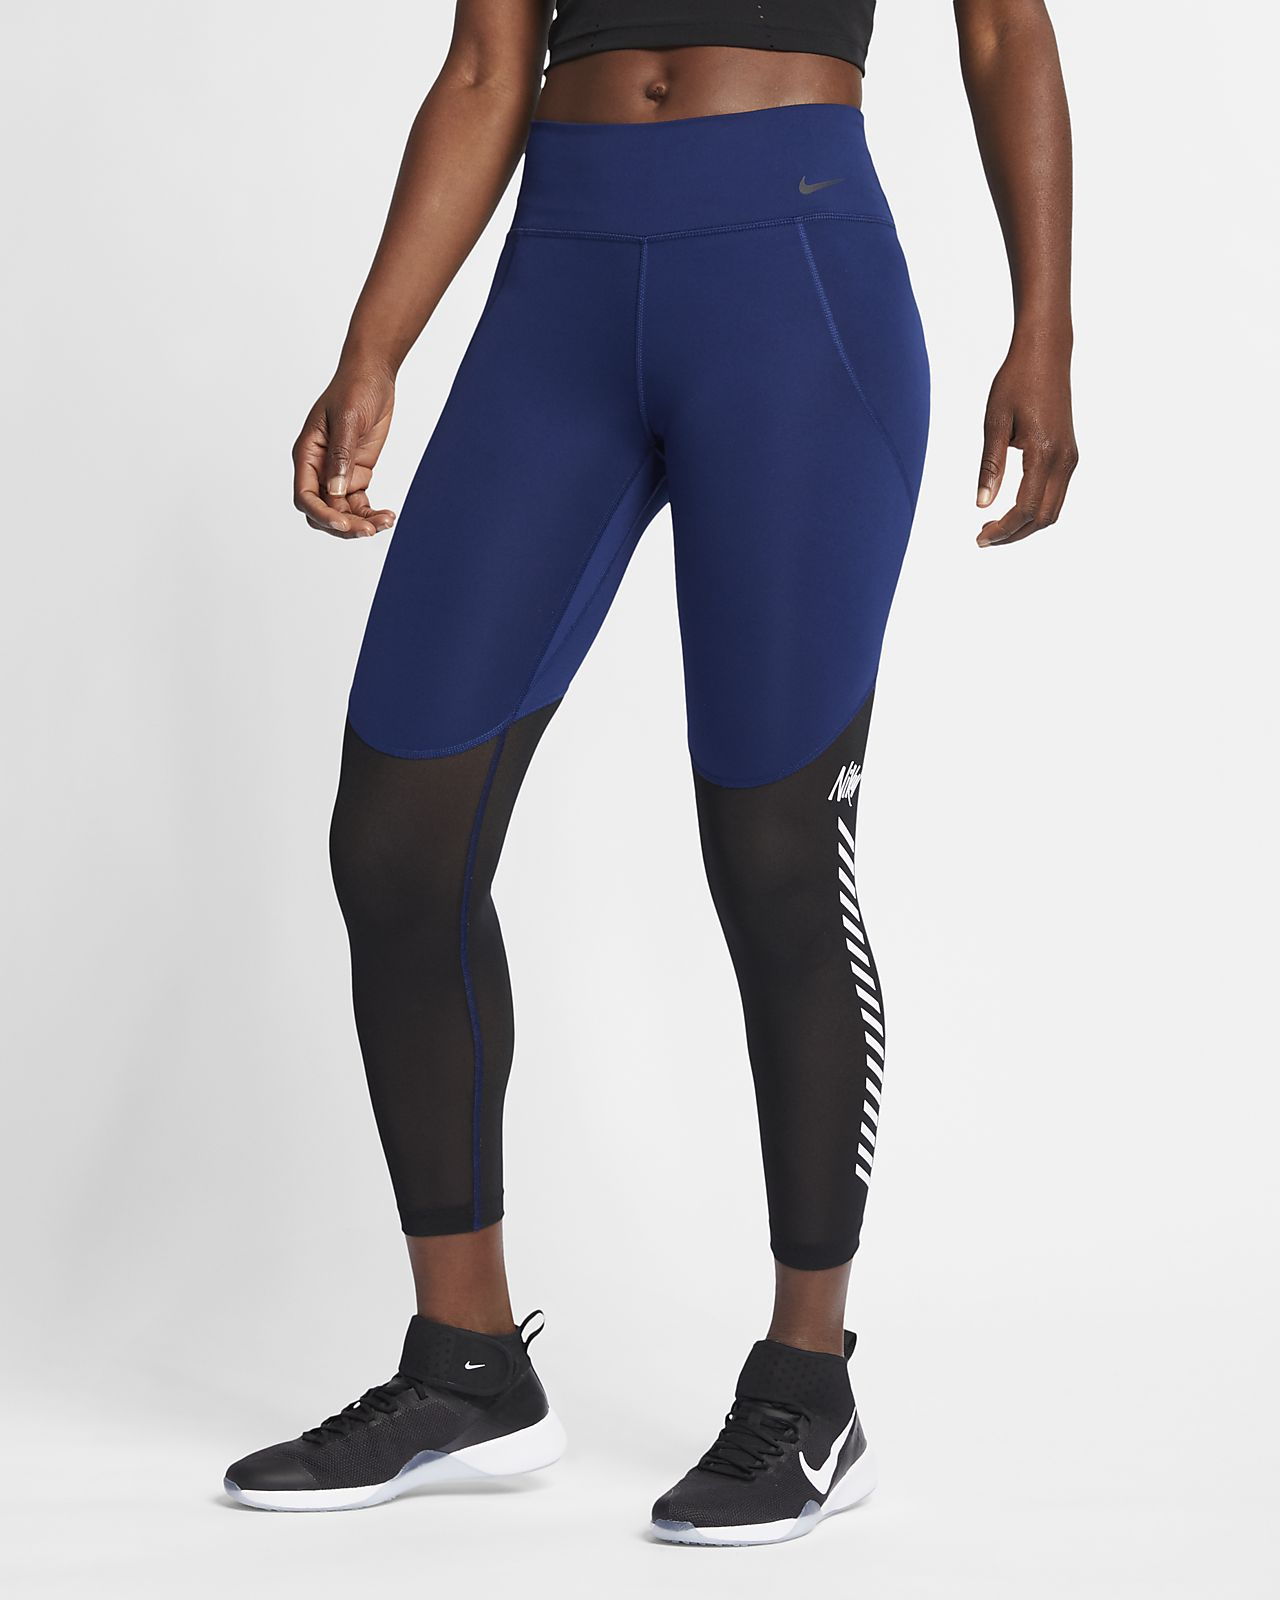 Nike One Women's 7/8 Graphic Training Tights